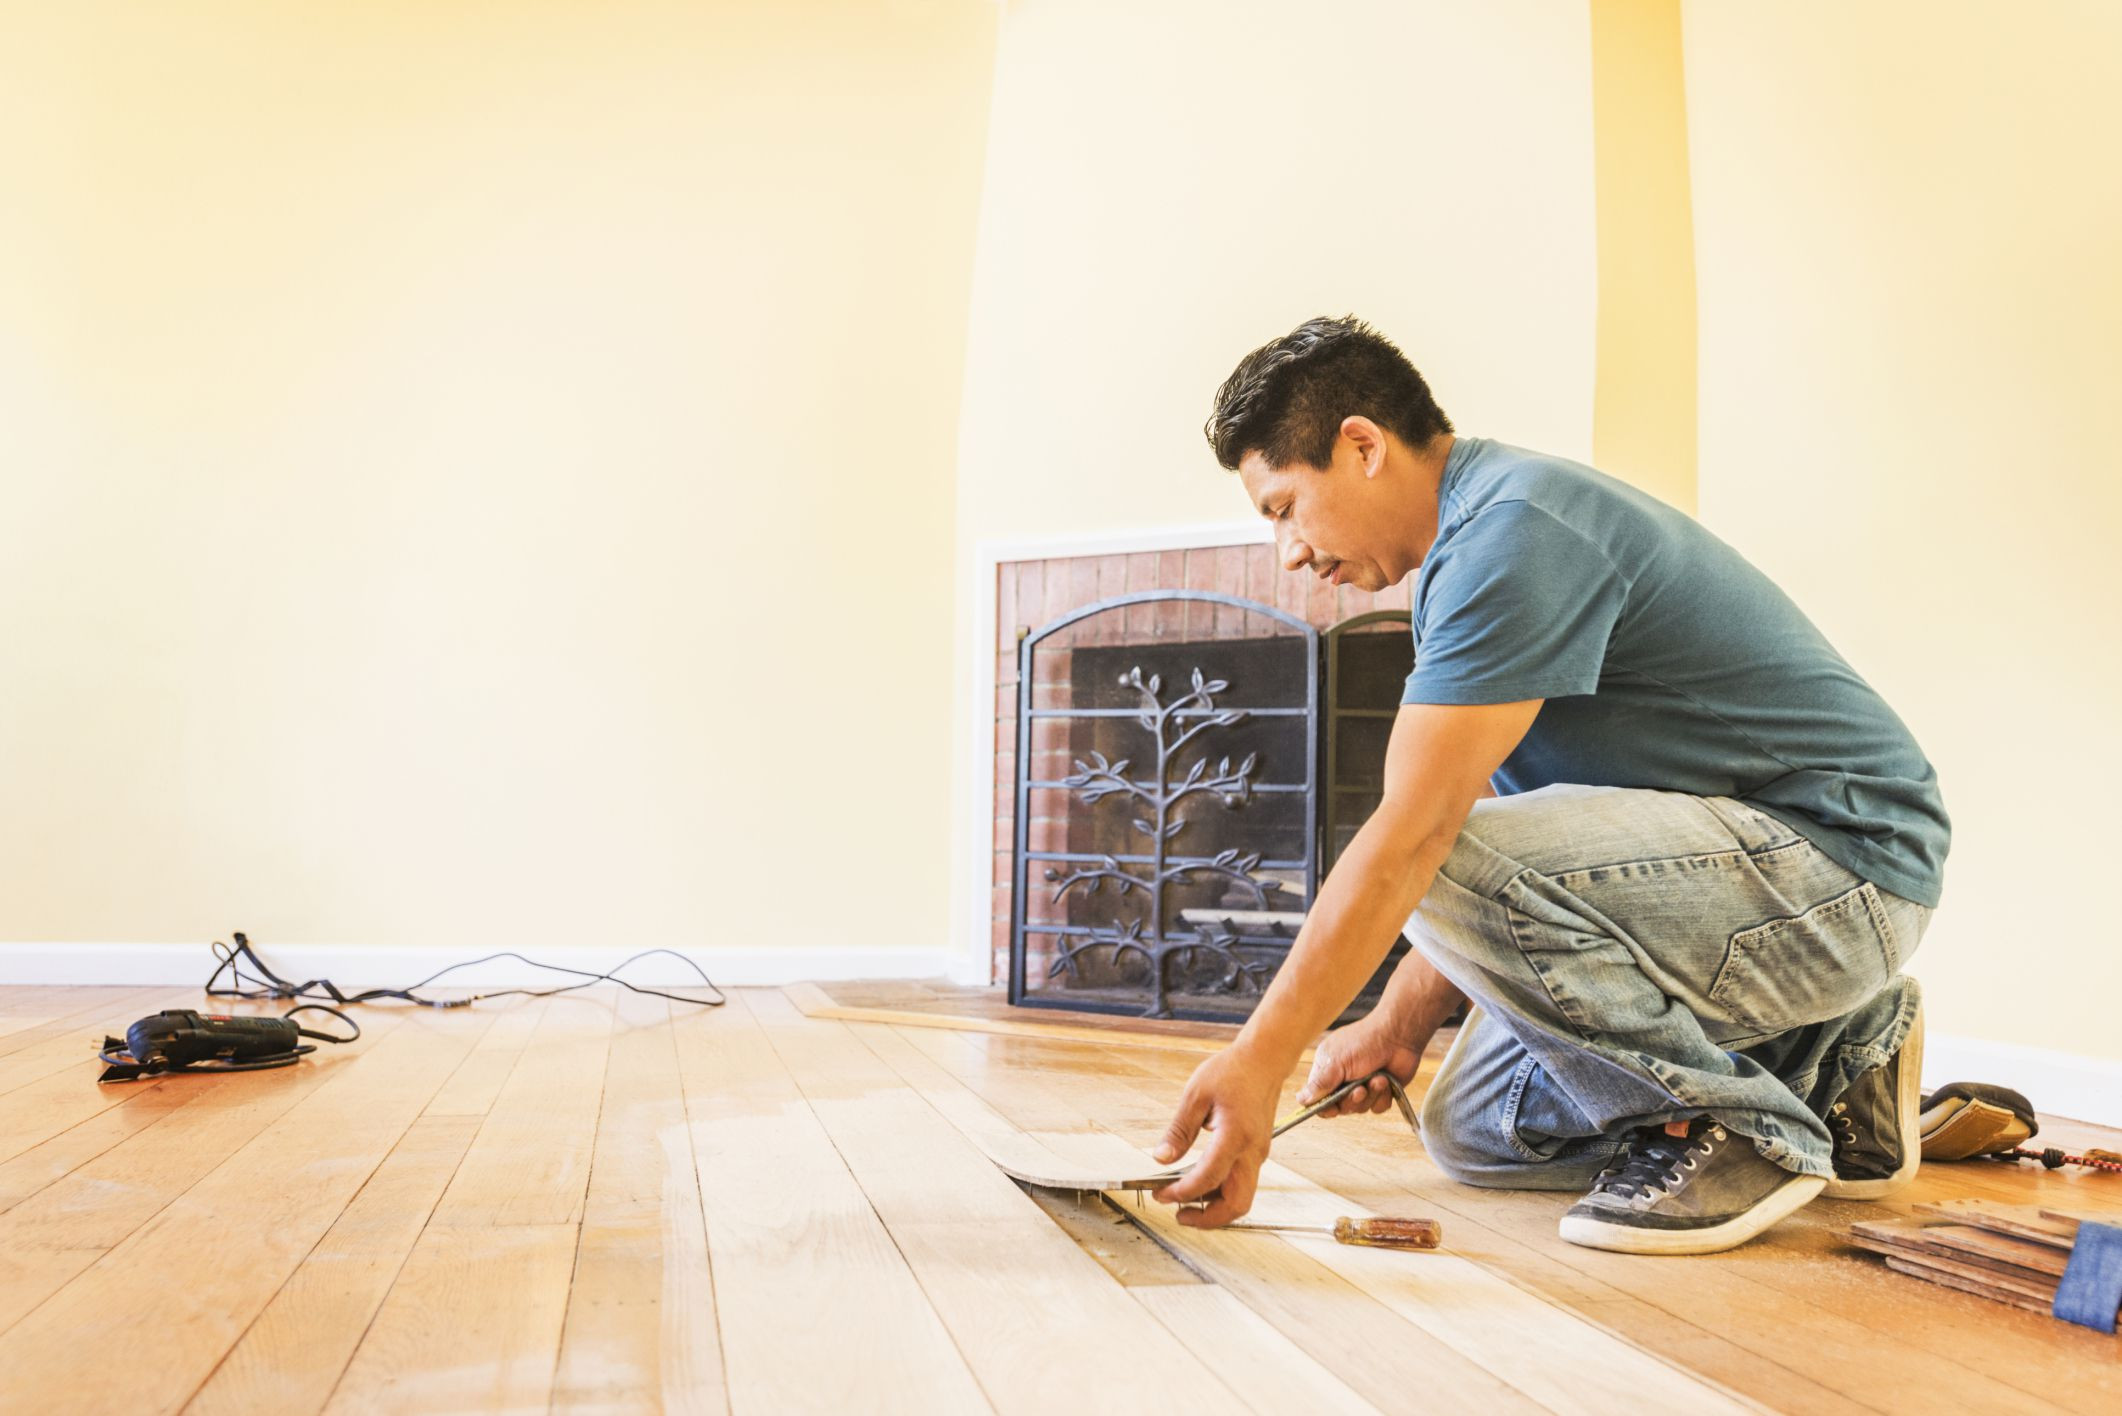 do i need a moisture barrier for hardwood floors of solid hardwood flooring costs for professional vs diy with installwoodflooring 592016327 56684d6f3df78ce1610a598a